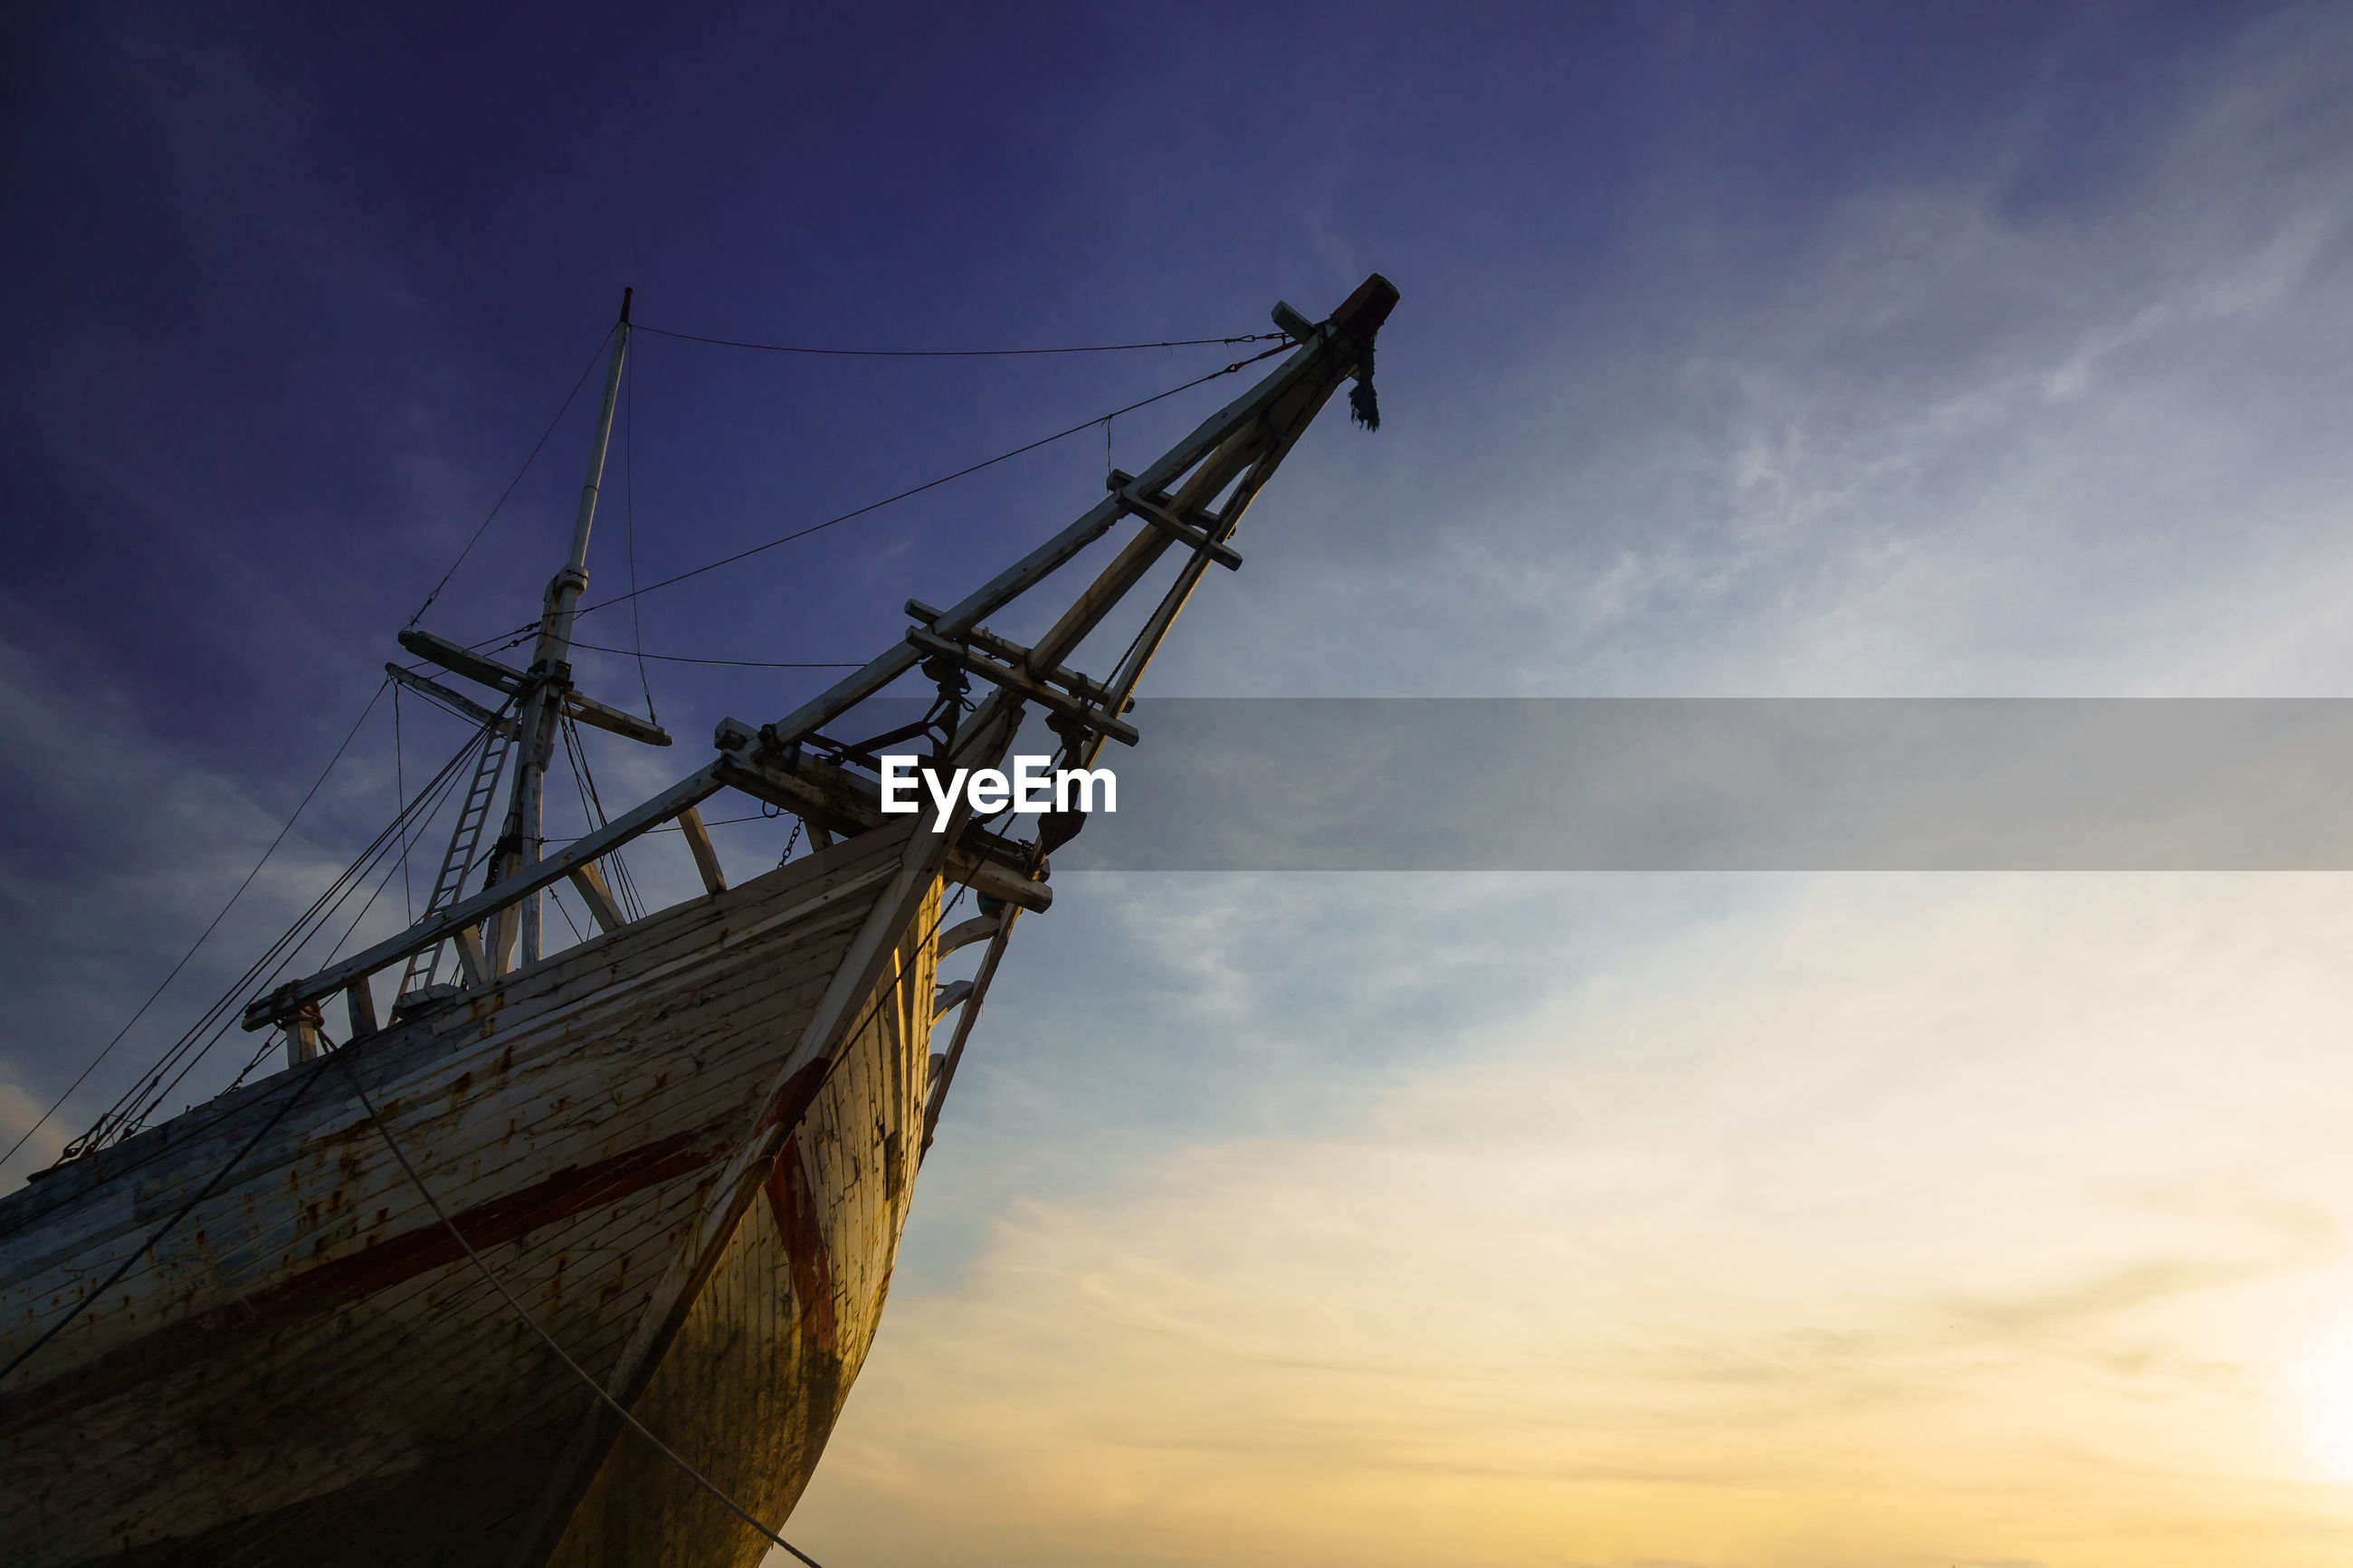 LOW ANGLE VIEW OF SAILBOAT IN SEA AGAINST SKY